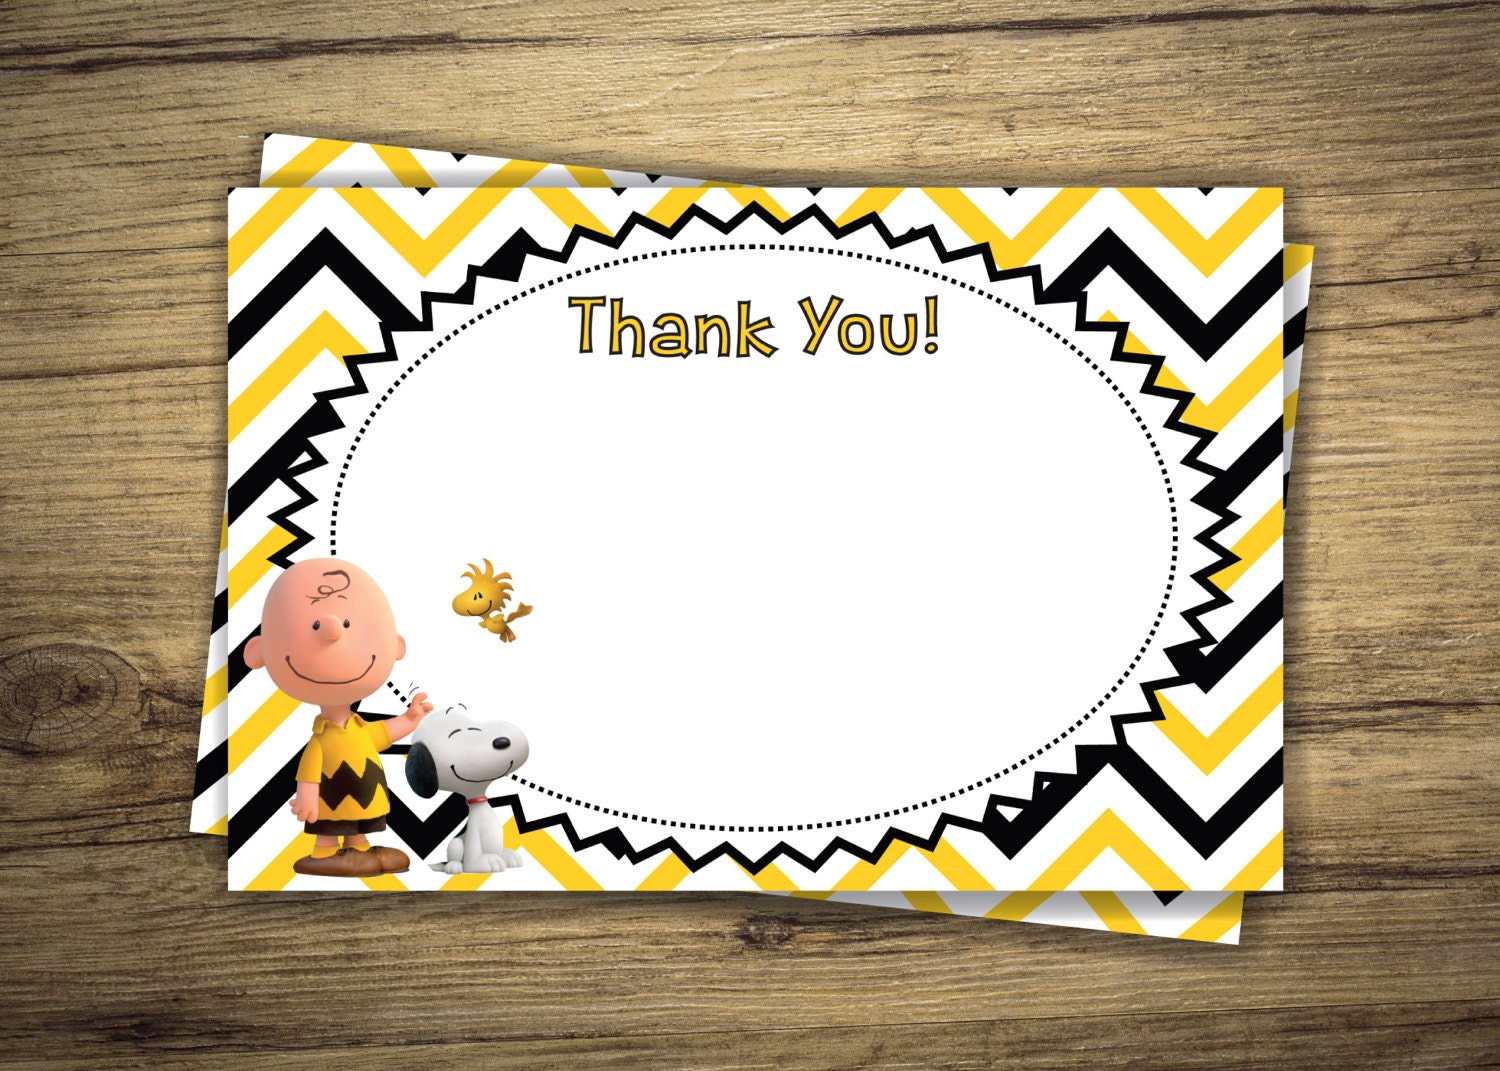 Charlie Brown & Snoopy Matching Thank You Birthday Party | Etsy